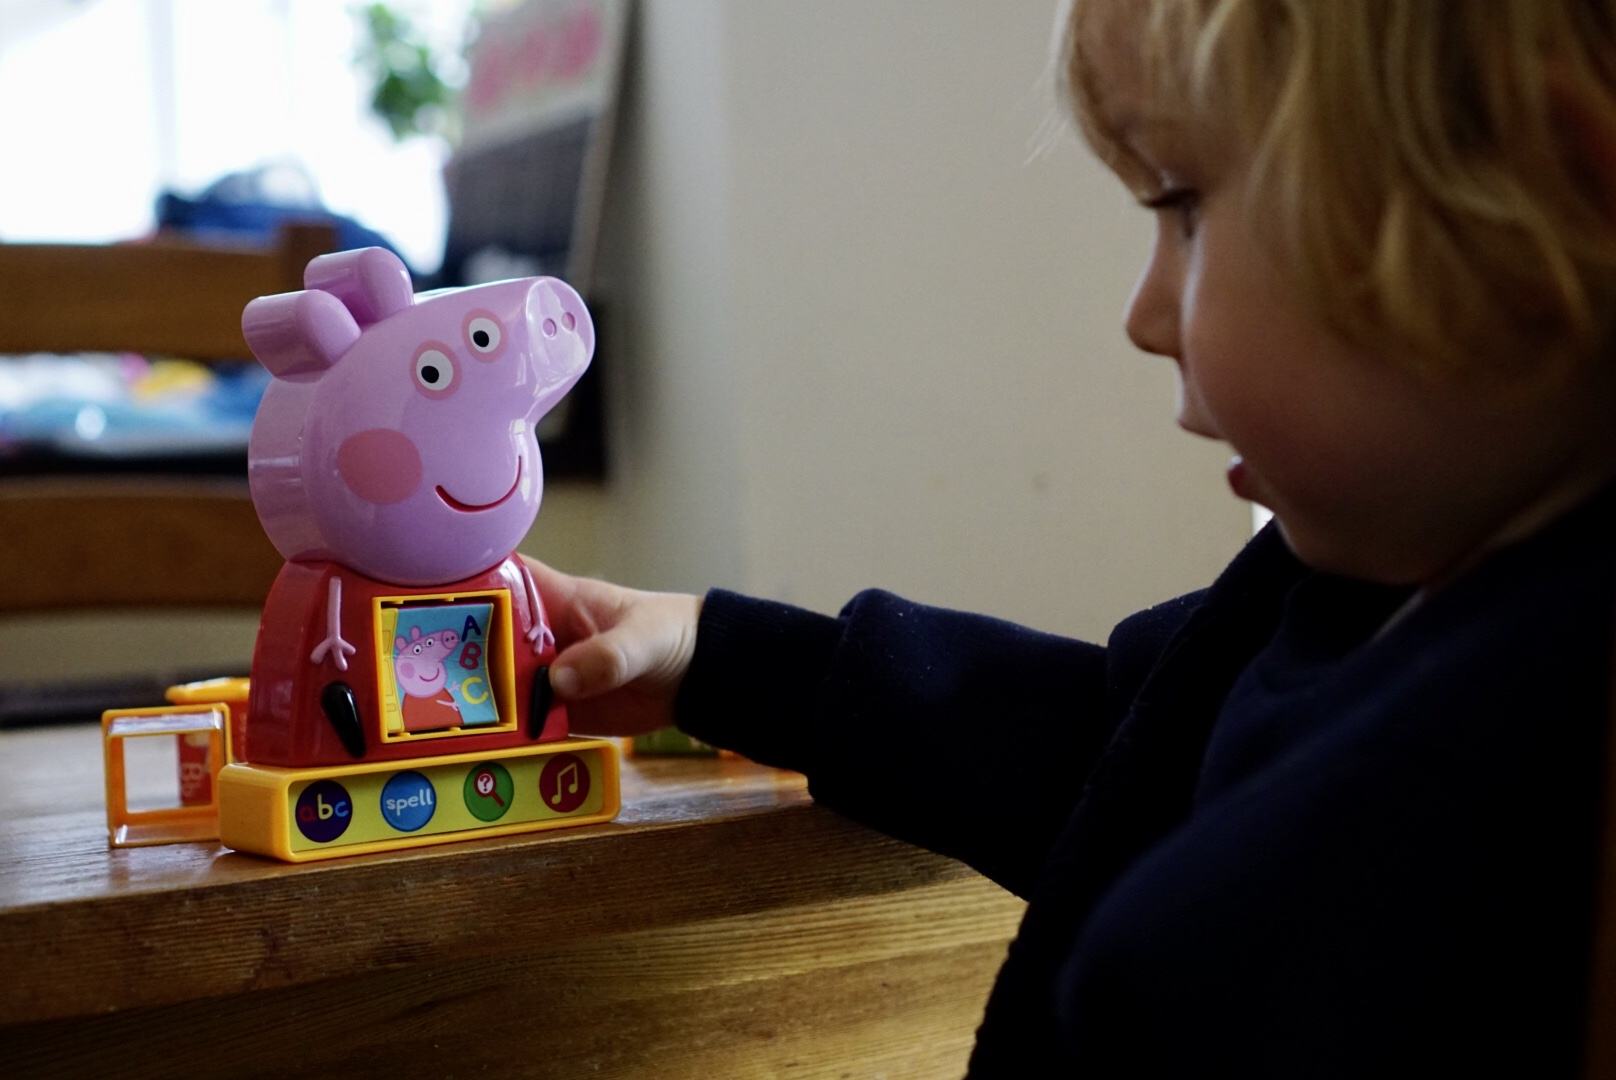 Peppa Pig Learning Toys Peppa's Phonic Alphabet